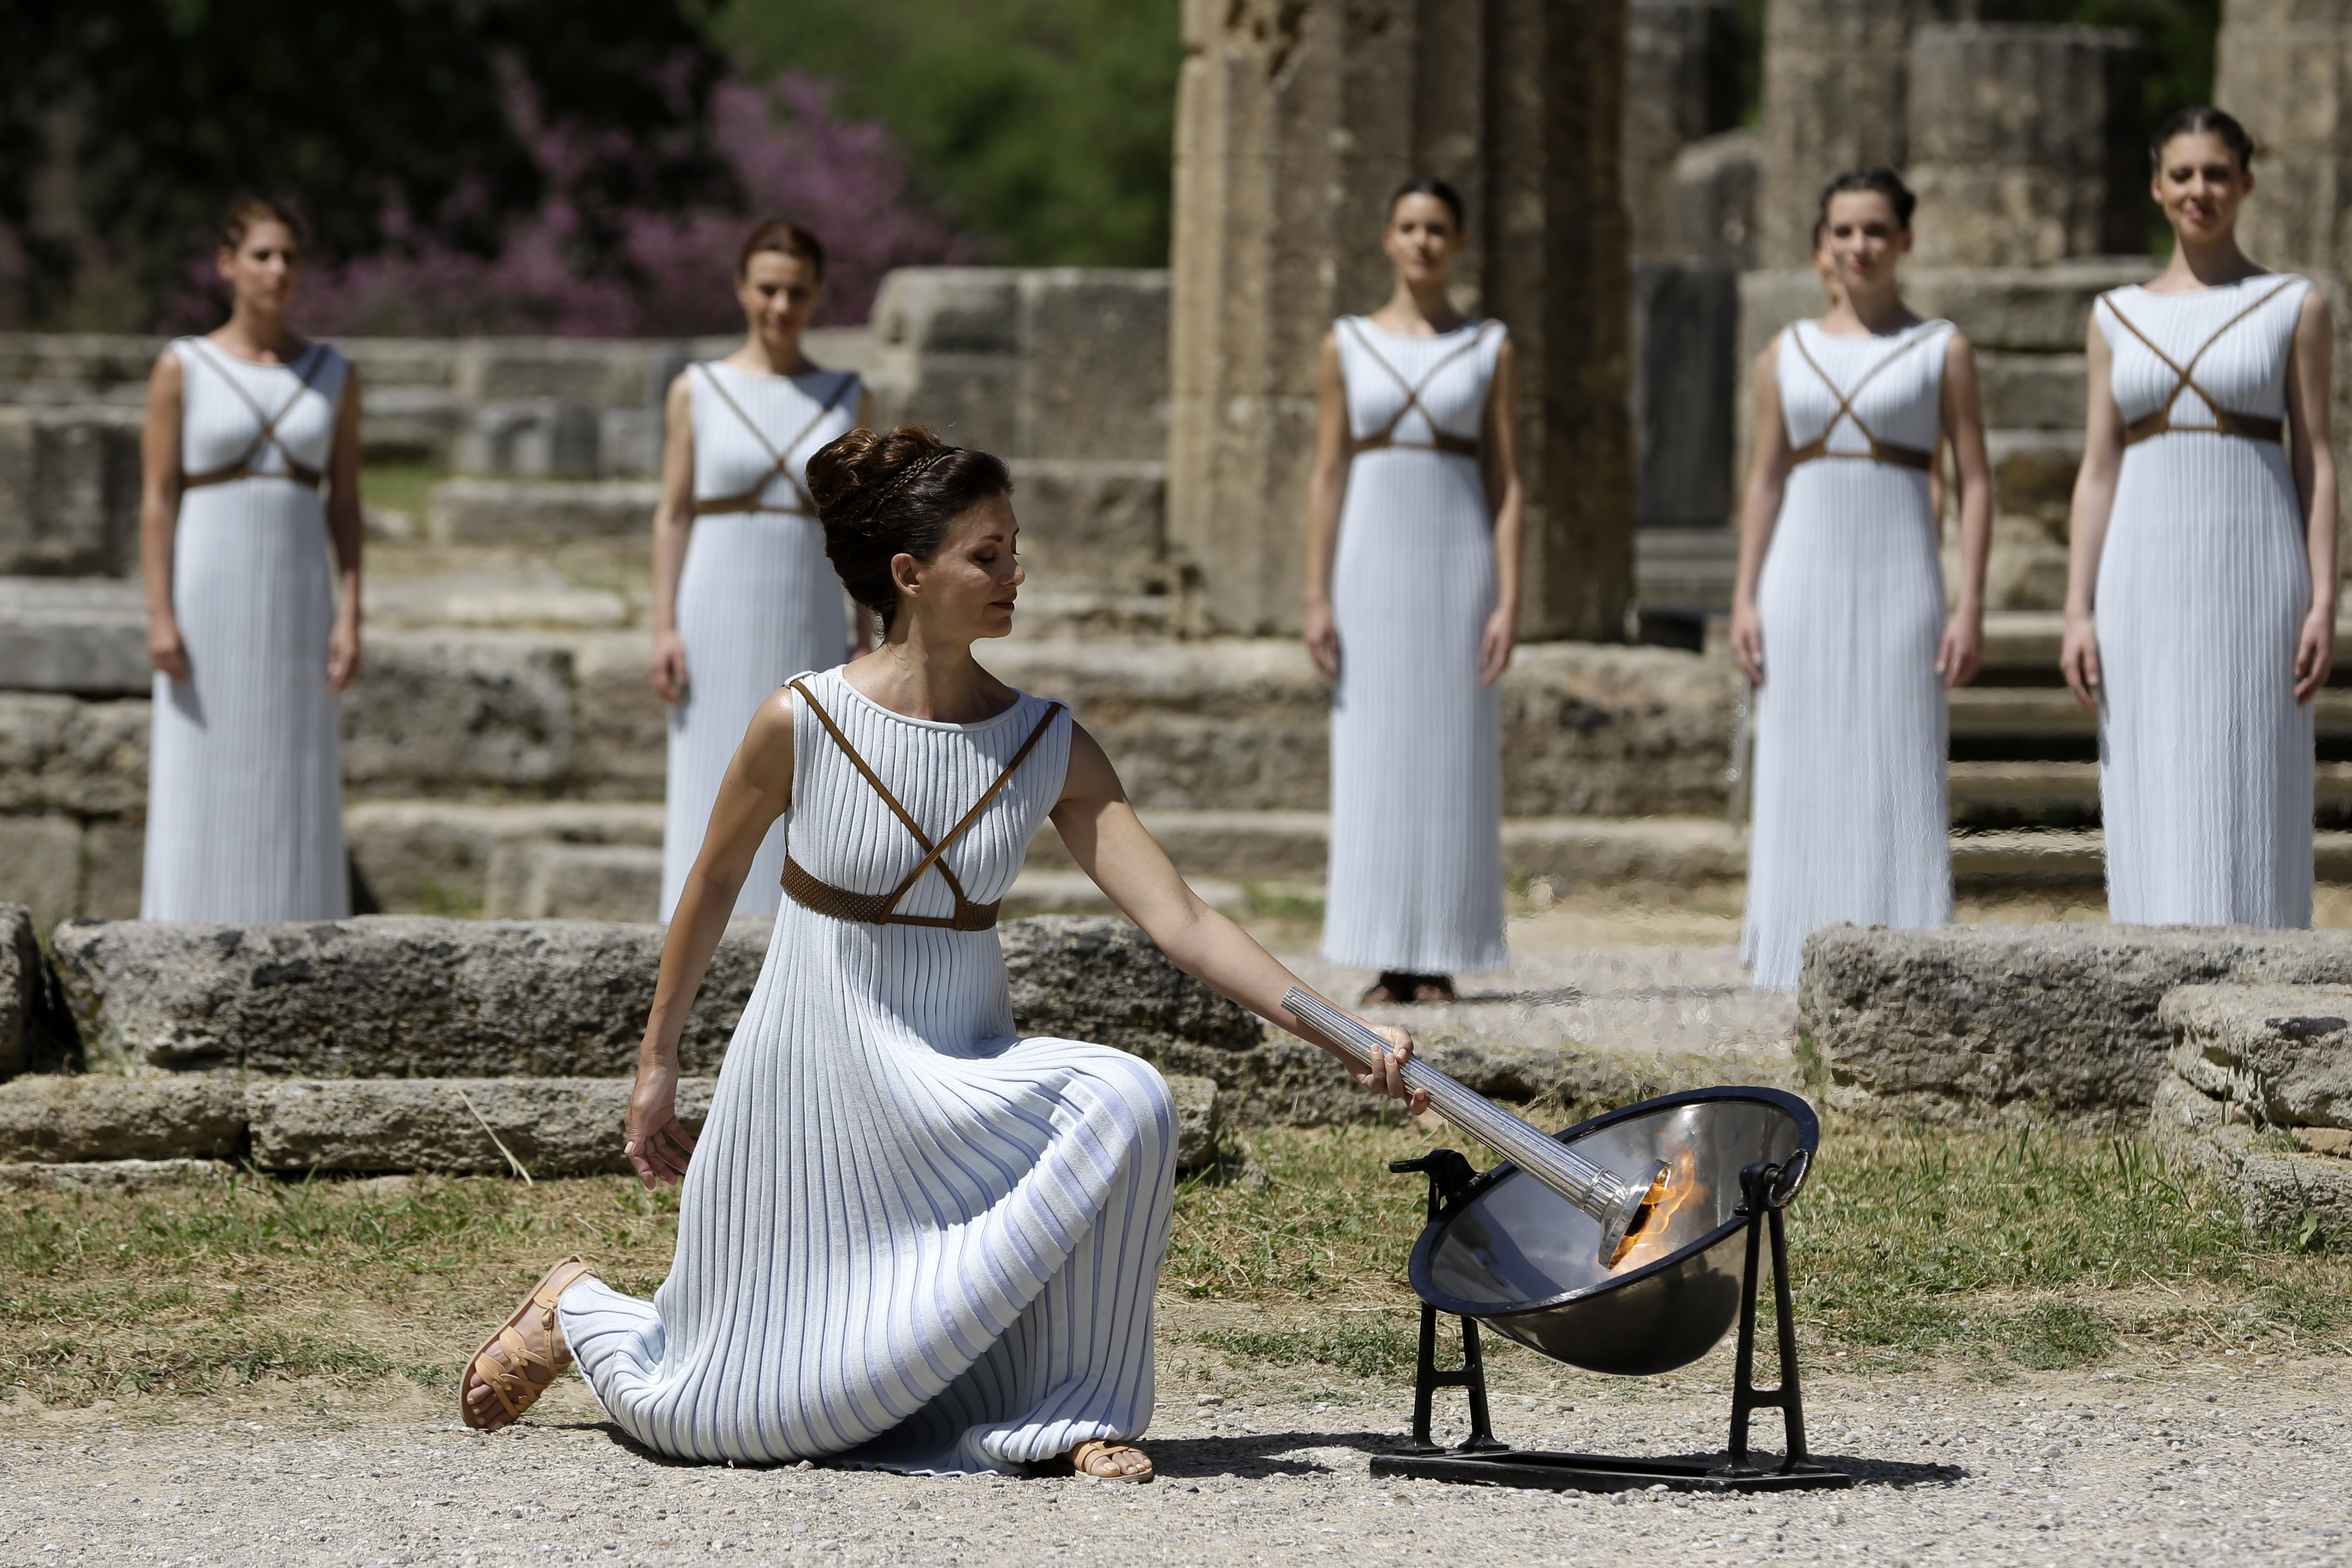 Actress Katerina Lehou, right, as high priestess, lights the Olympic Flame, during the final dress rehearsal of the lighting of the Olympic flame at Ancient Olympia, in western Greece on Wednesday, April 20, 2016. The flame will be transported by torch re